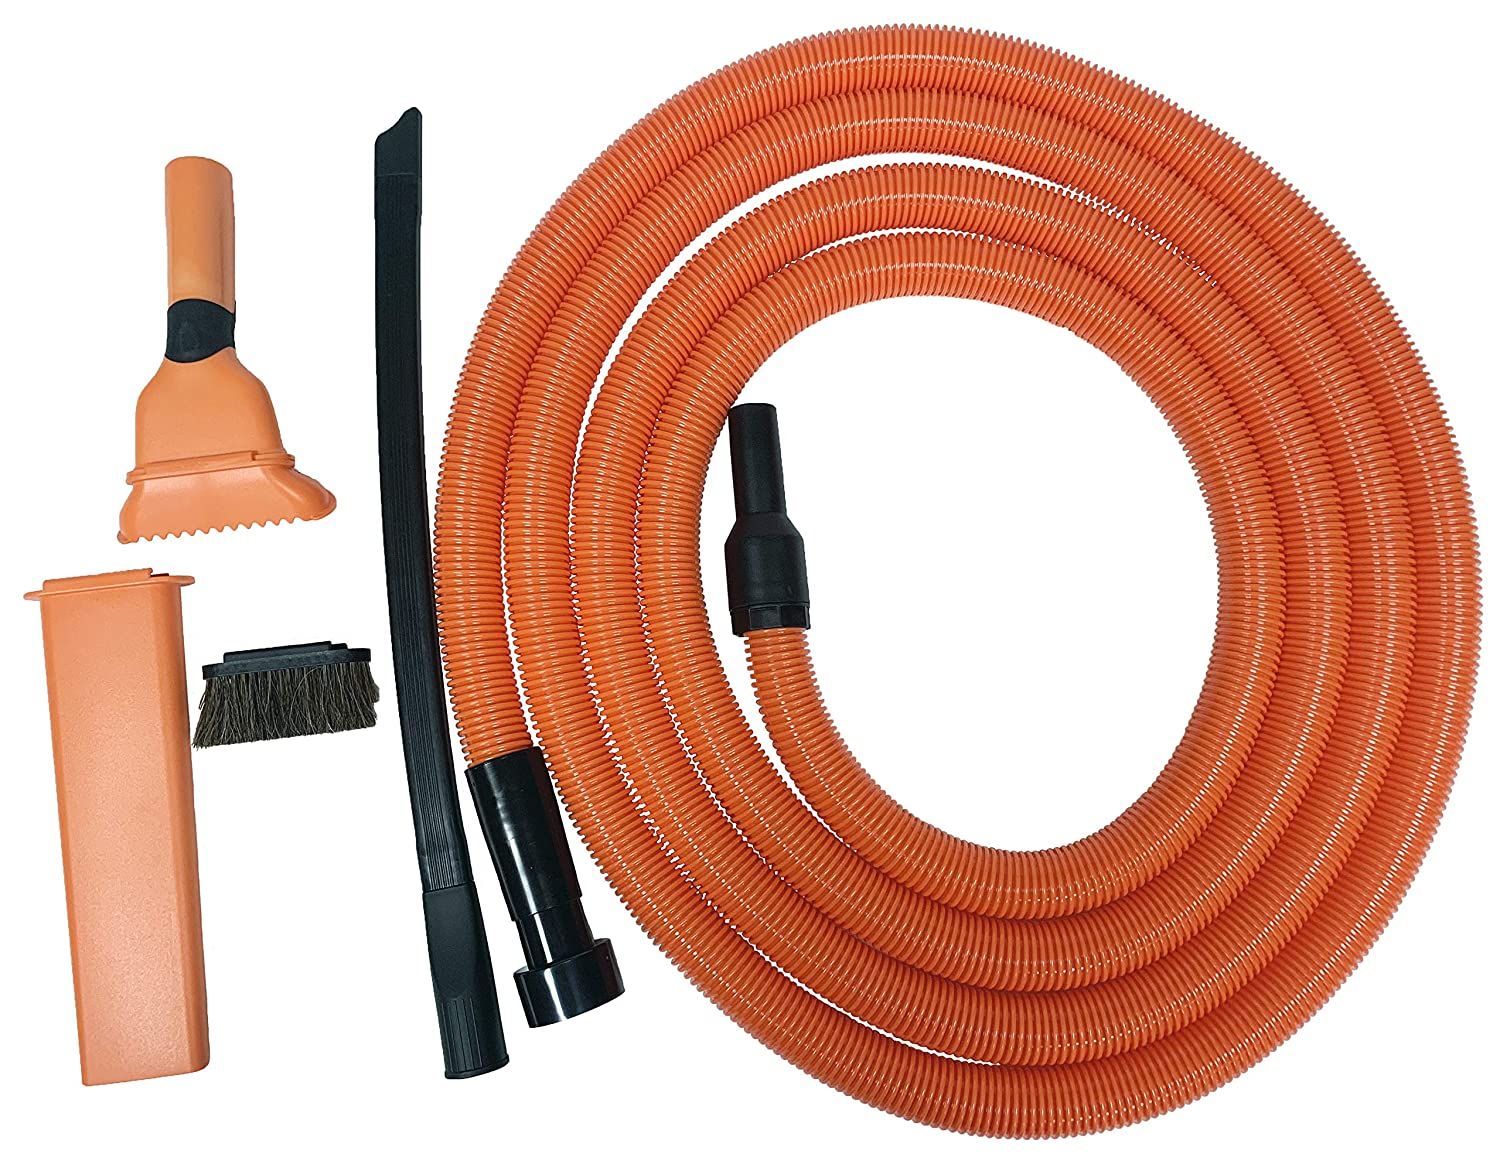 Cen-Tec Systems 90342 Vacuum Garage Shop Kit with 20-Foot Hose